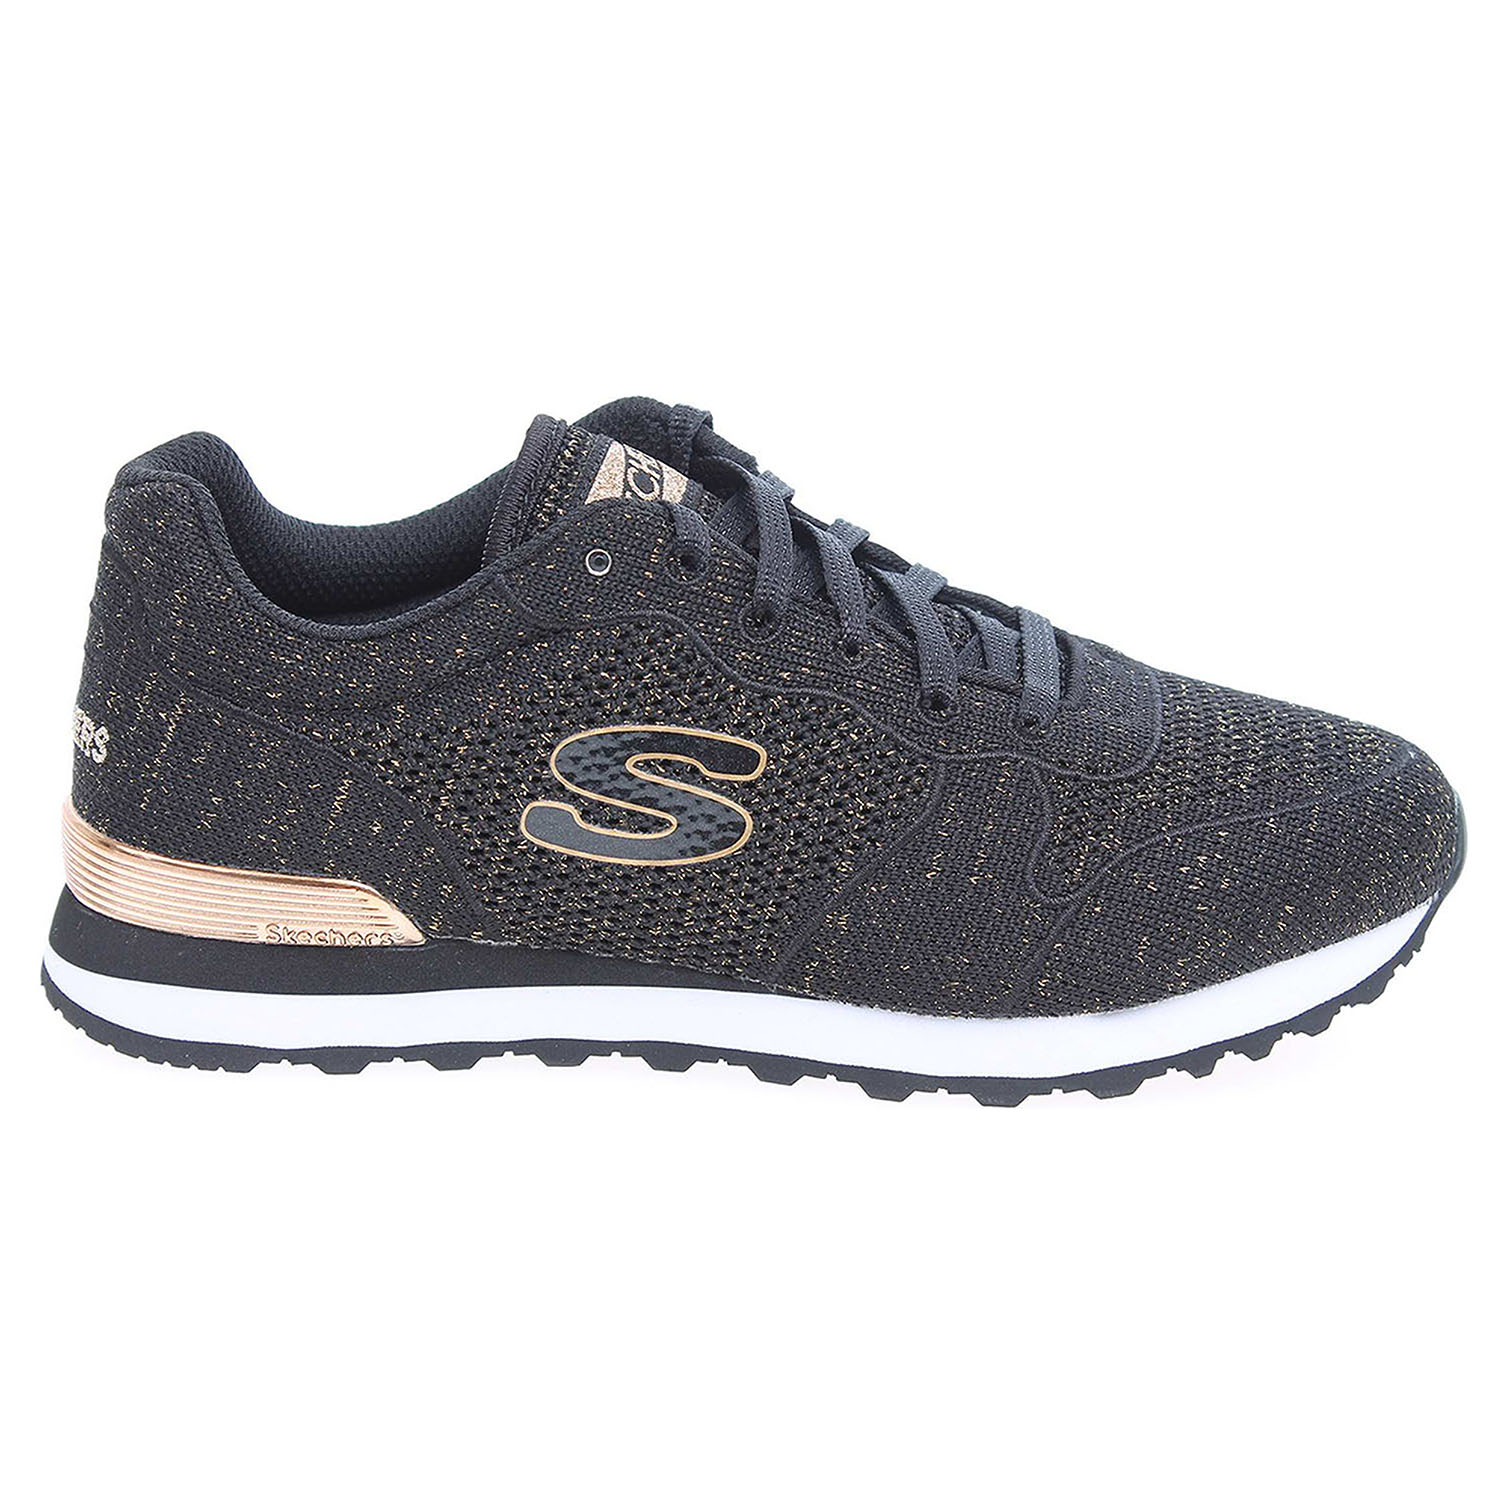 Ecco Skechers OG 85 - Low Flyers black-gold 23900192